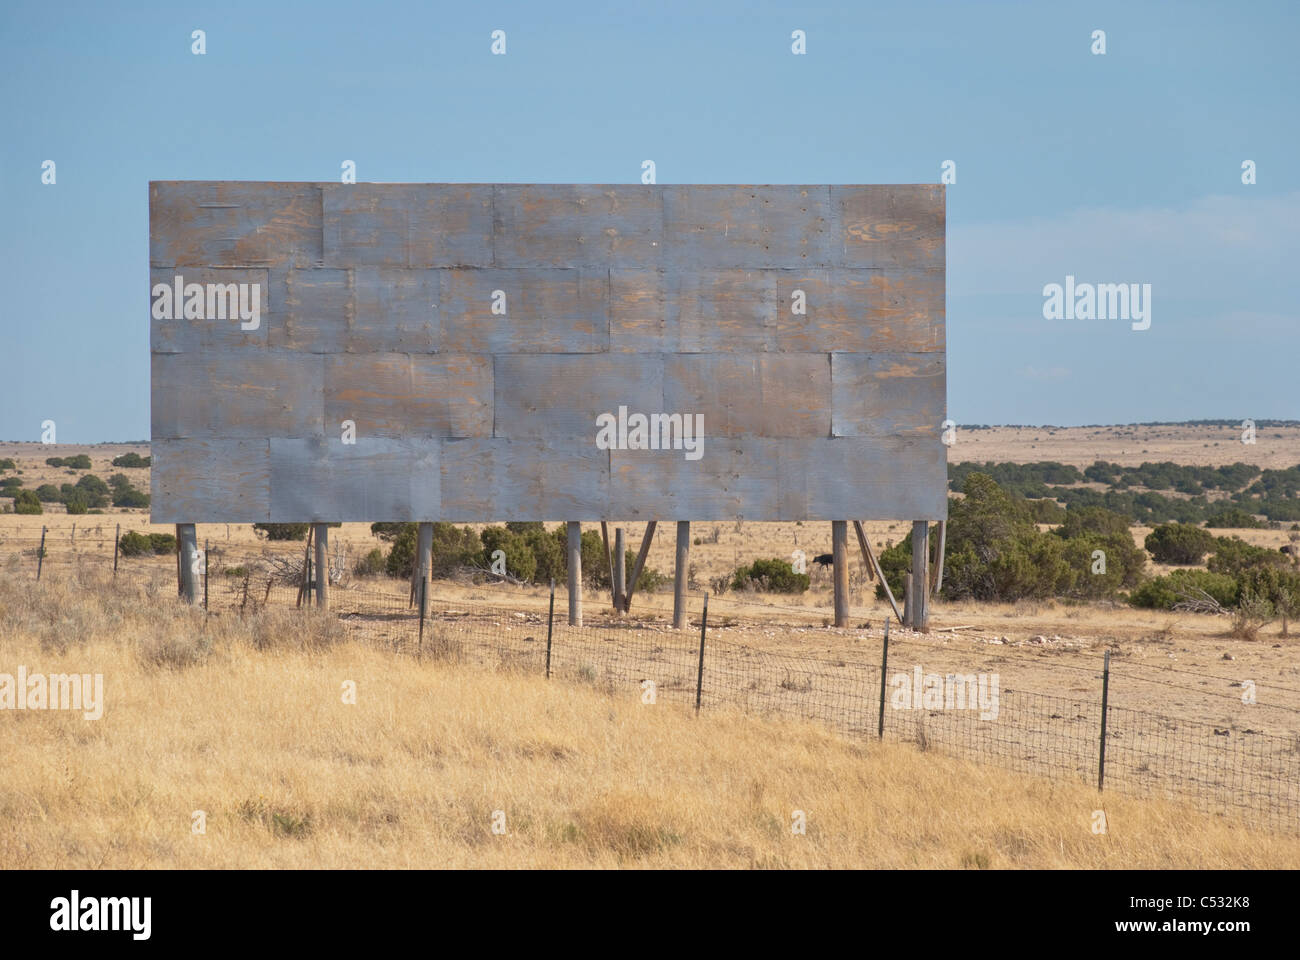 An empty billboard awaits a creative advertisement on the side of the road in rural New Mexico. - Stock Image